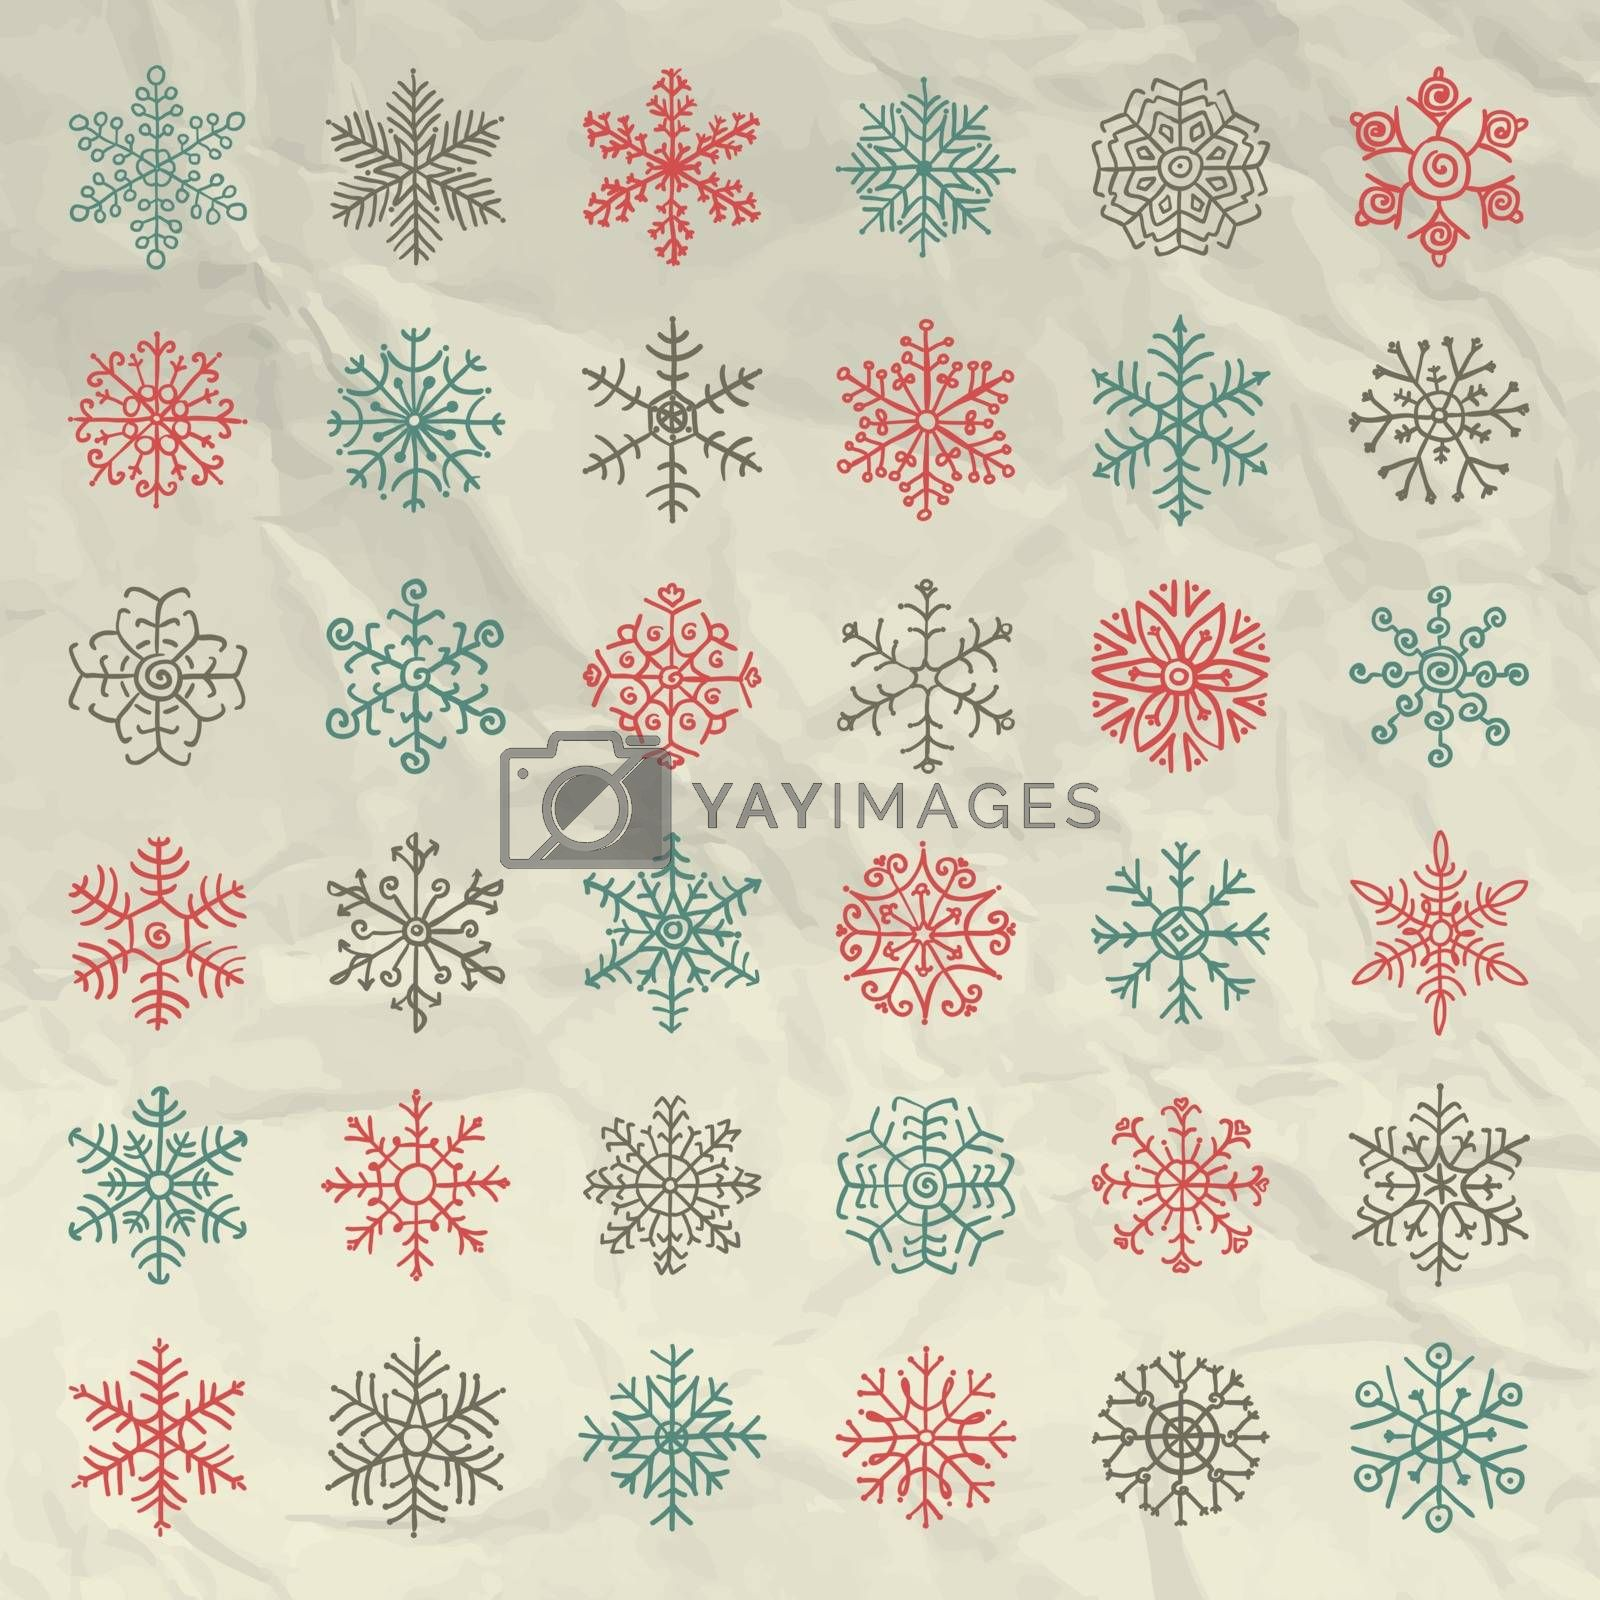 Hand Sketched Winter Snowflakes Doodles on Sheet Of Crumpled Paper Texture. Vector Illustration. Pattern Brushes. Christmas Snow flake Symbols